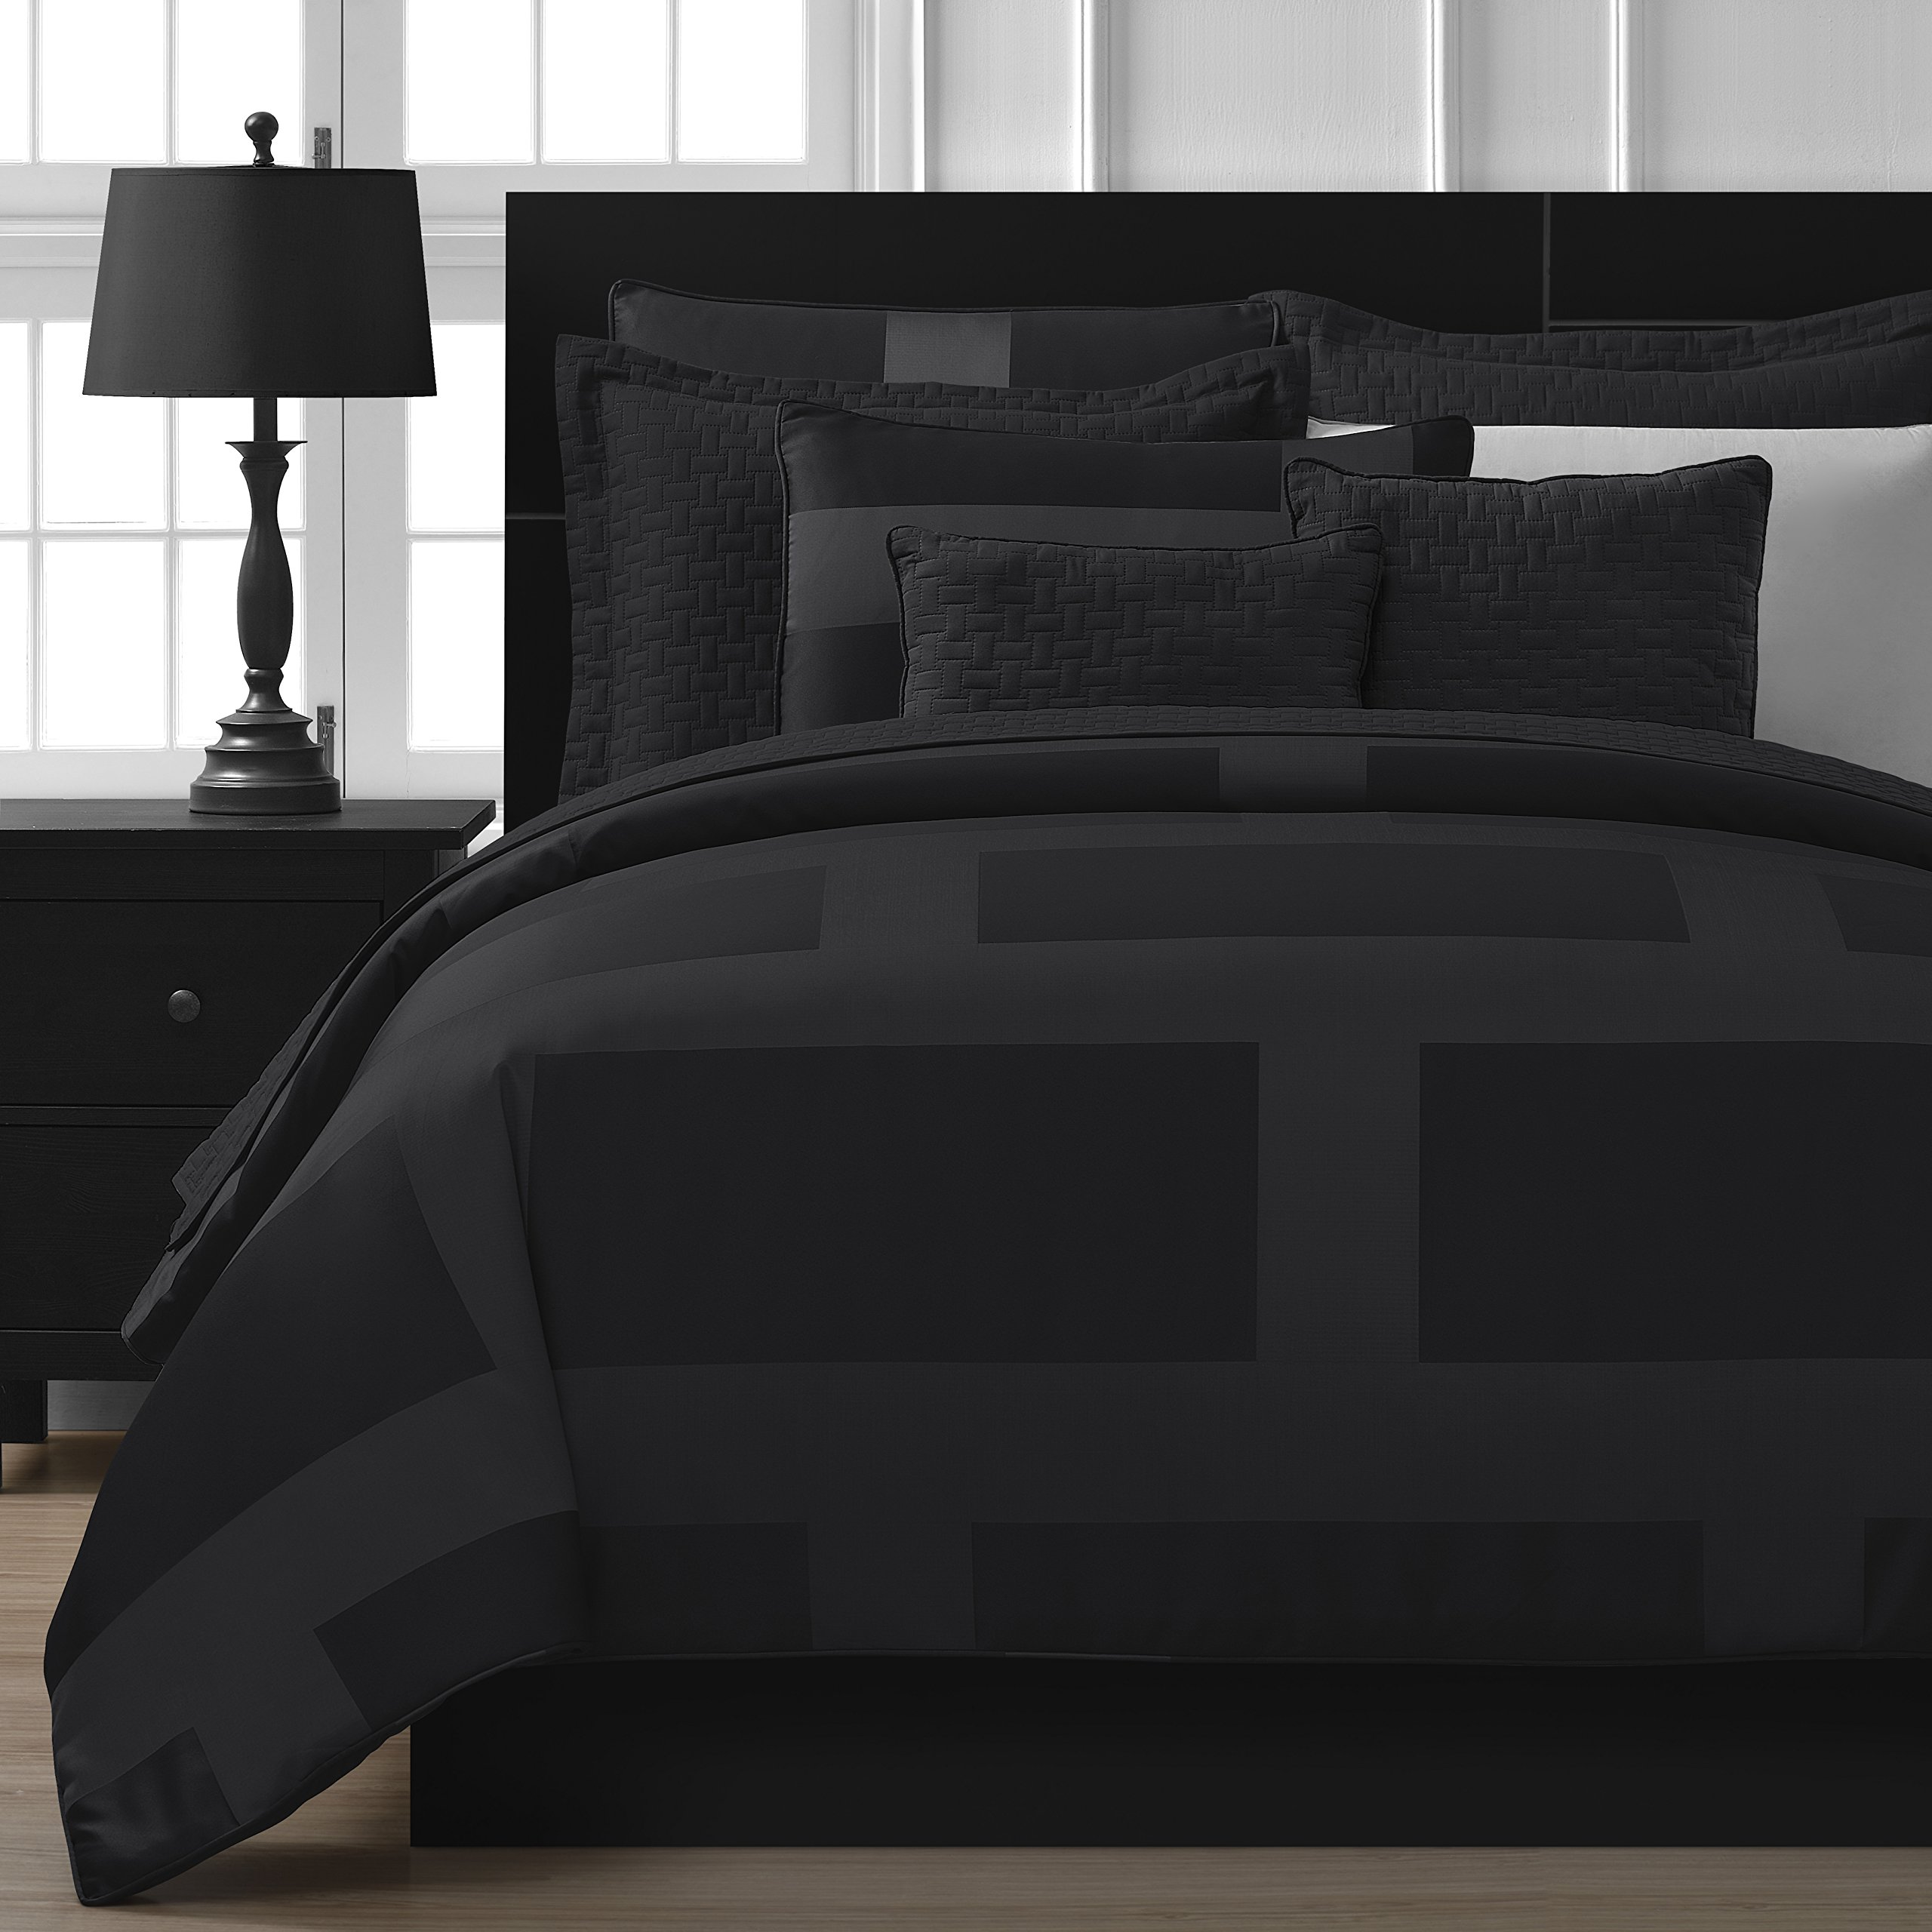 Comfy Bedding Frame Jacquard Microfiber Full 8-piece Comforter Set, Black